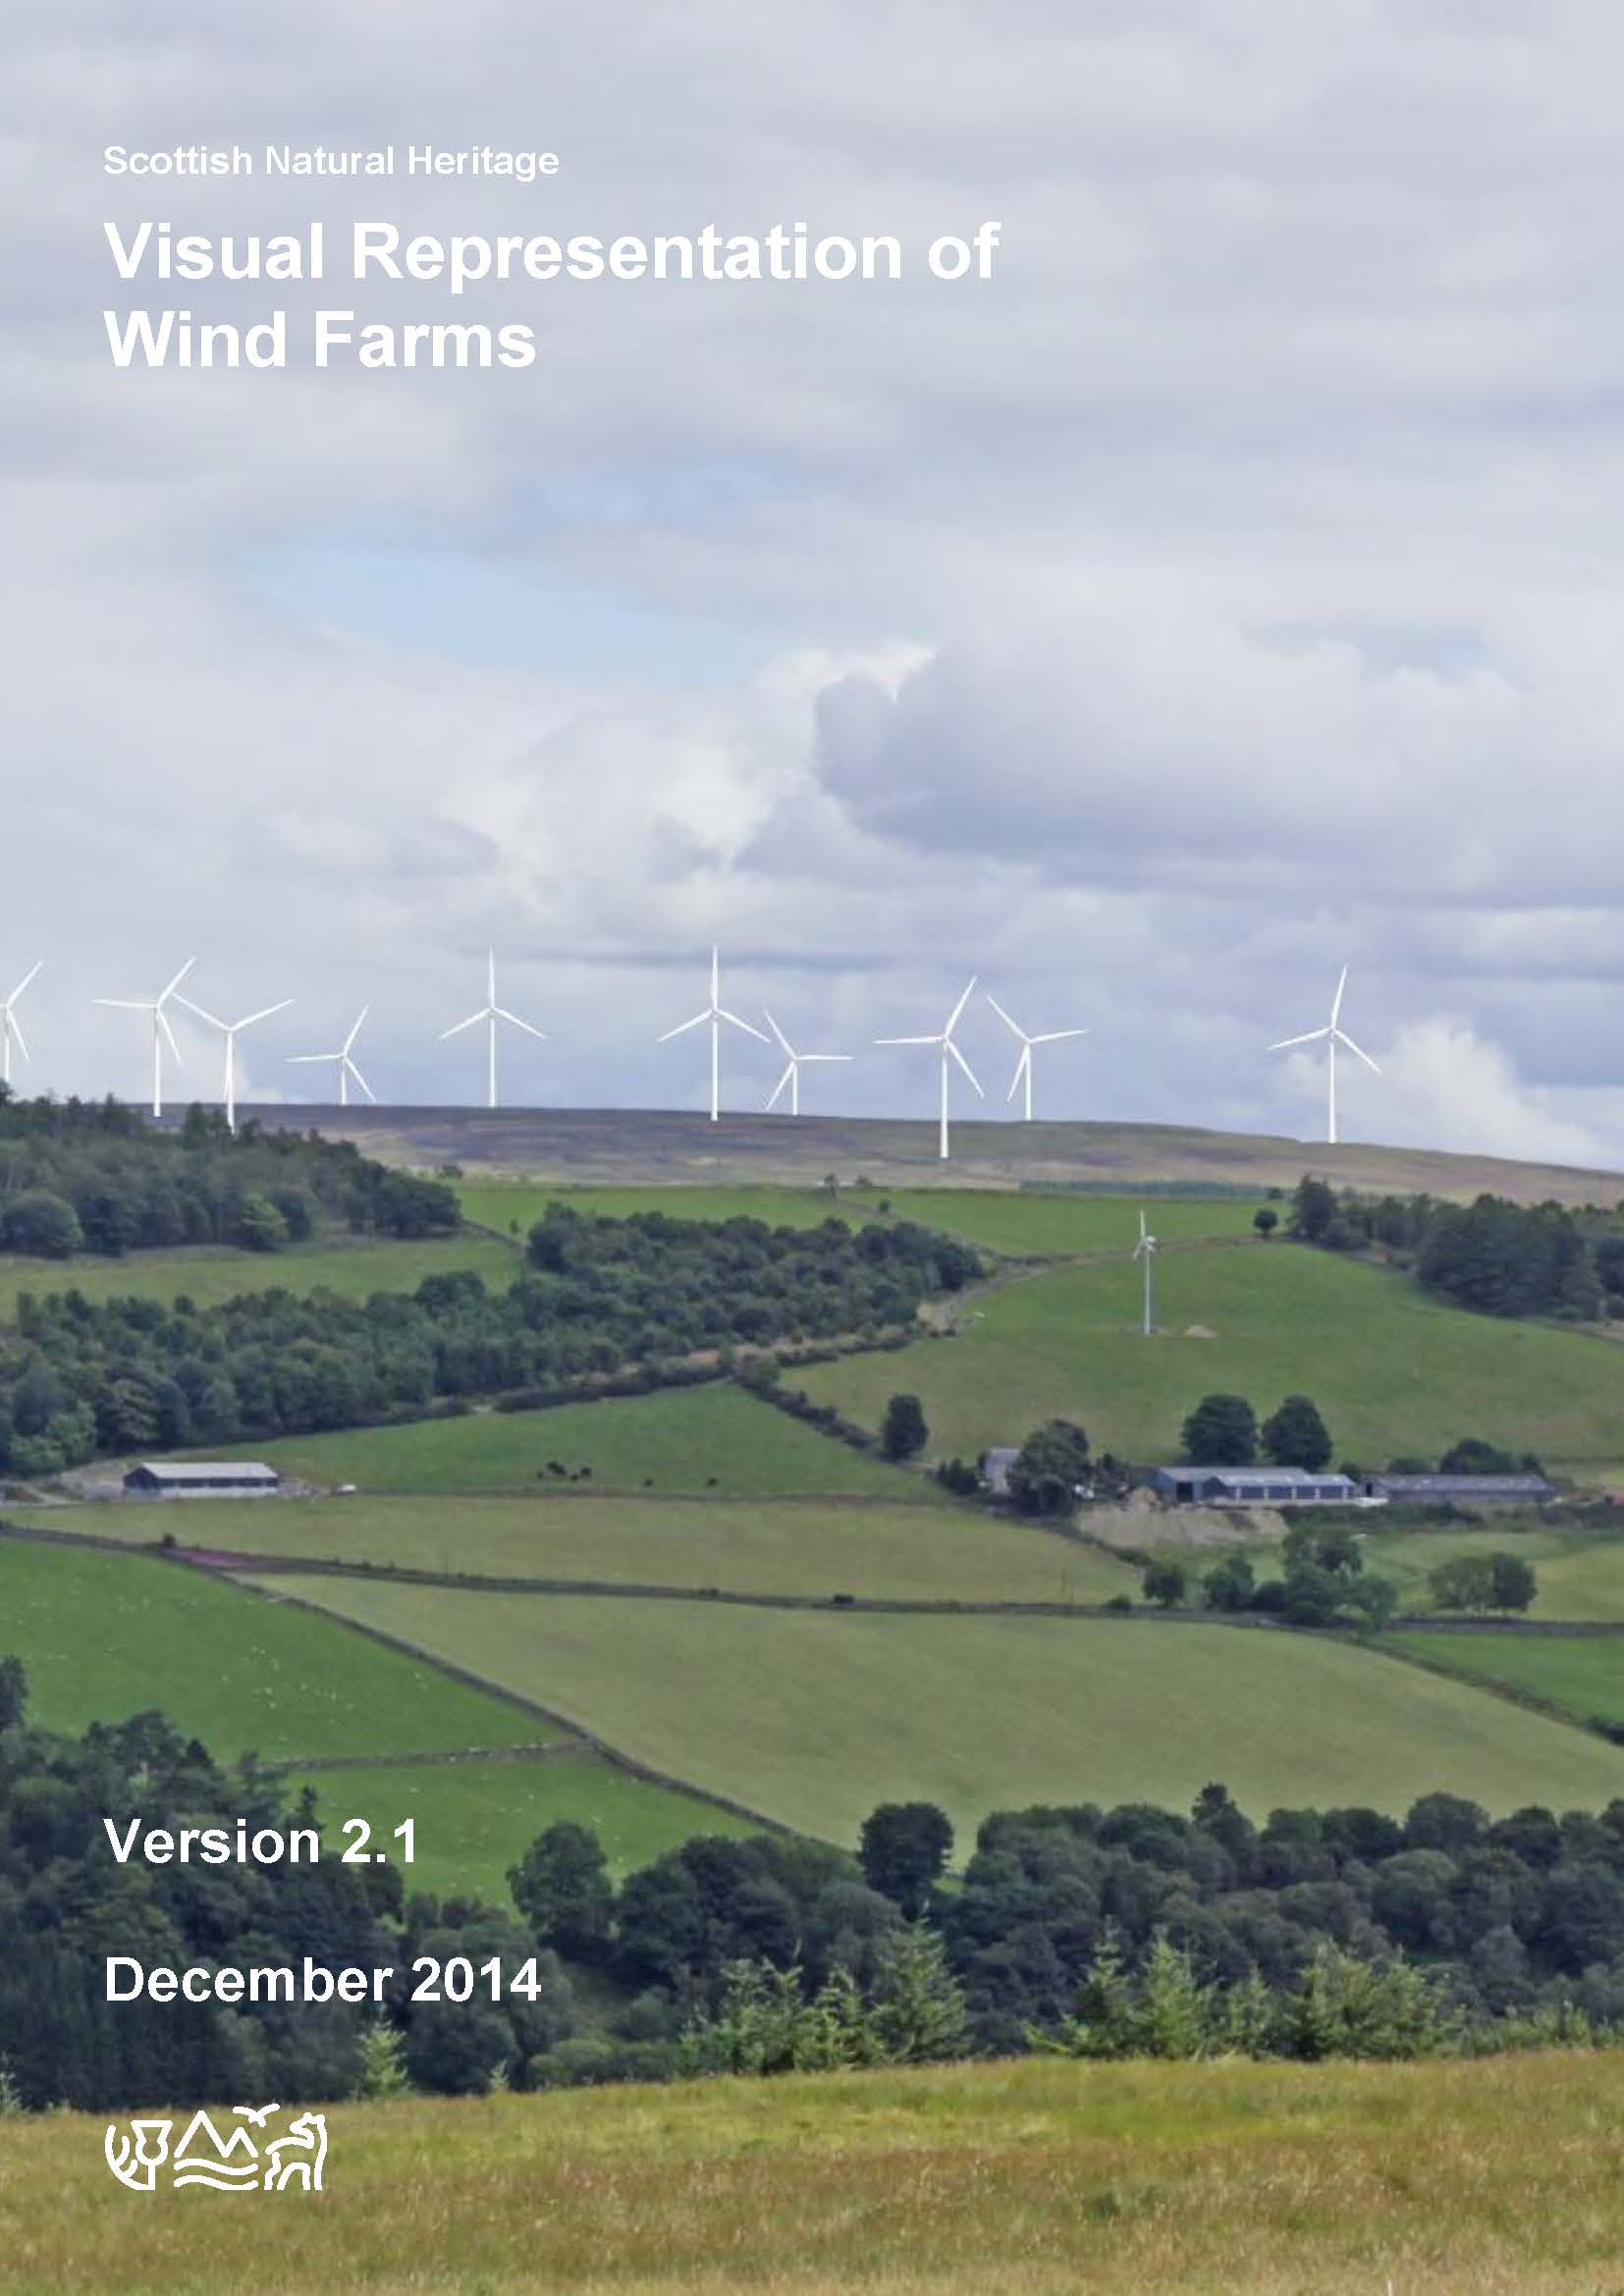 SNH Visual Representation of Wind Farms V2.1 - December 2014 - Cover